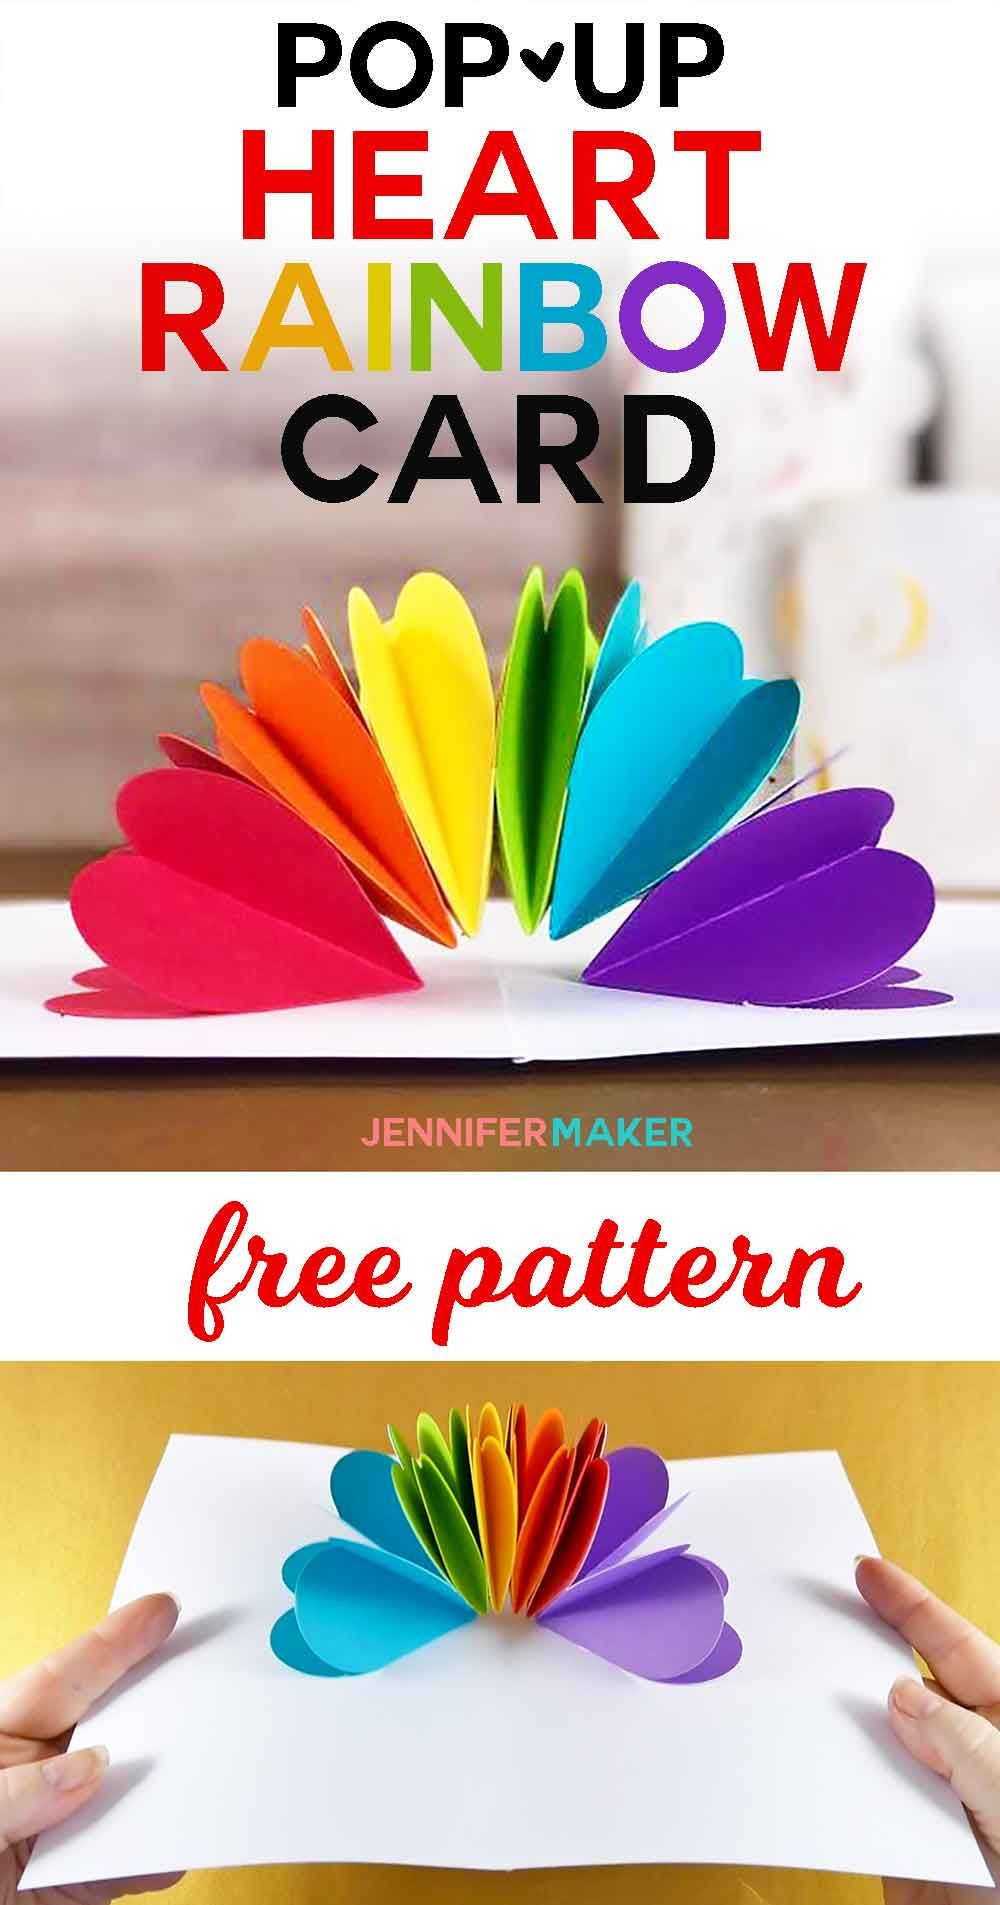 Make a popup heart rainbow card faccio io pinterest